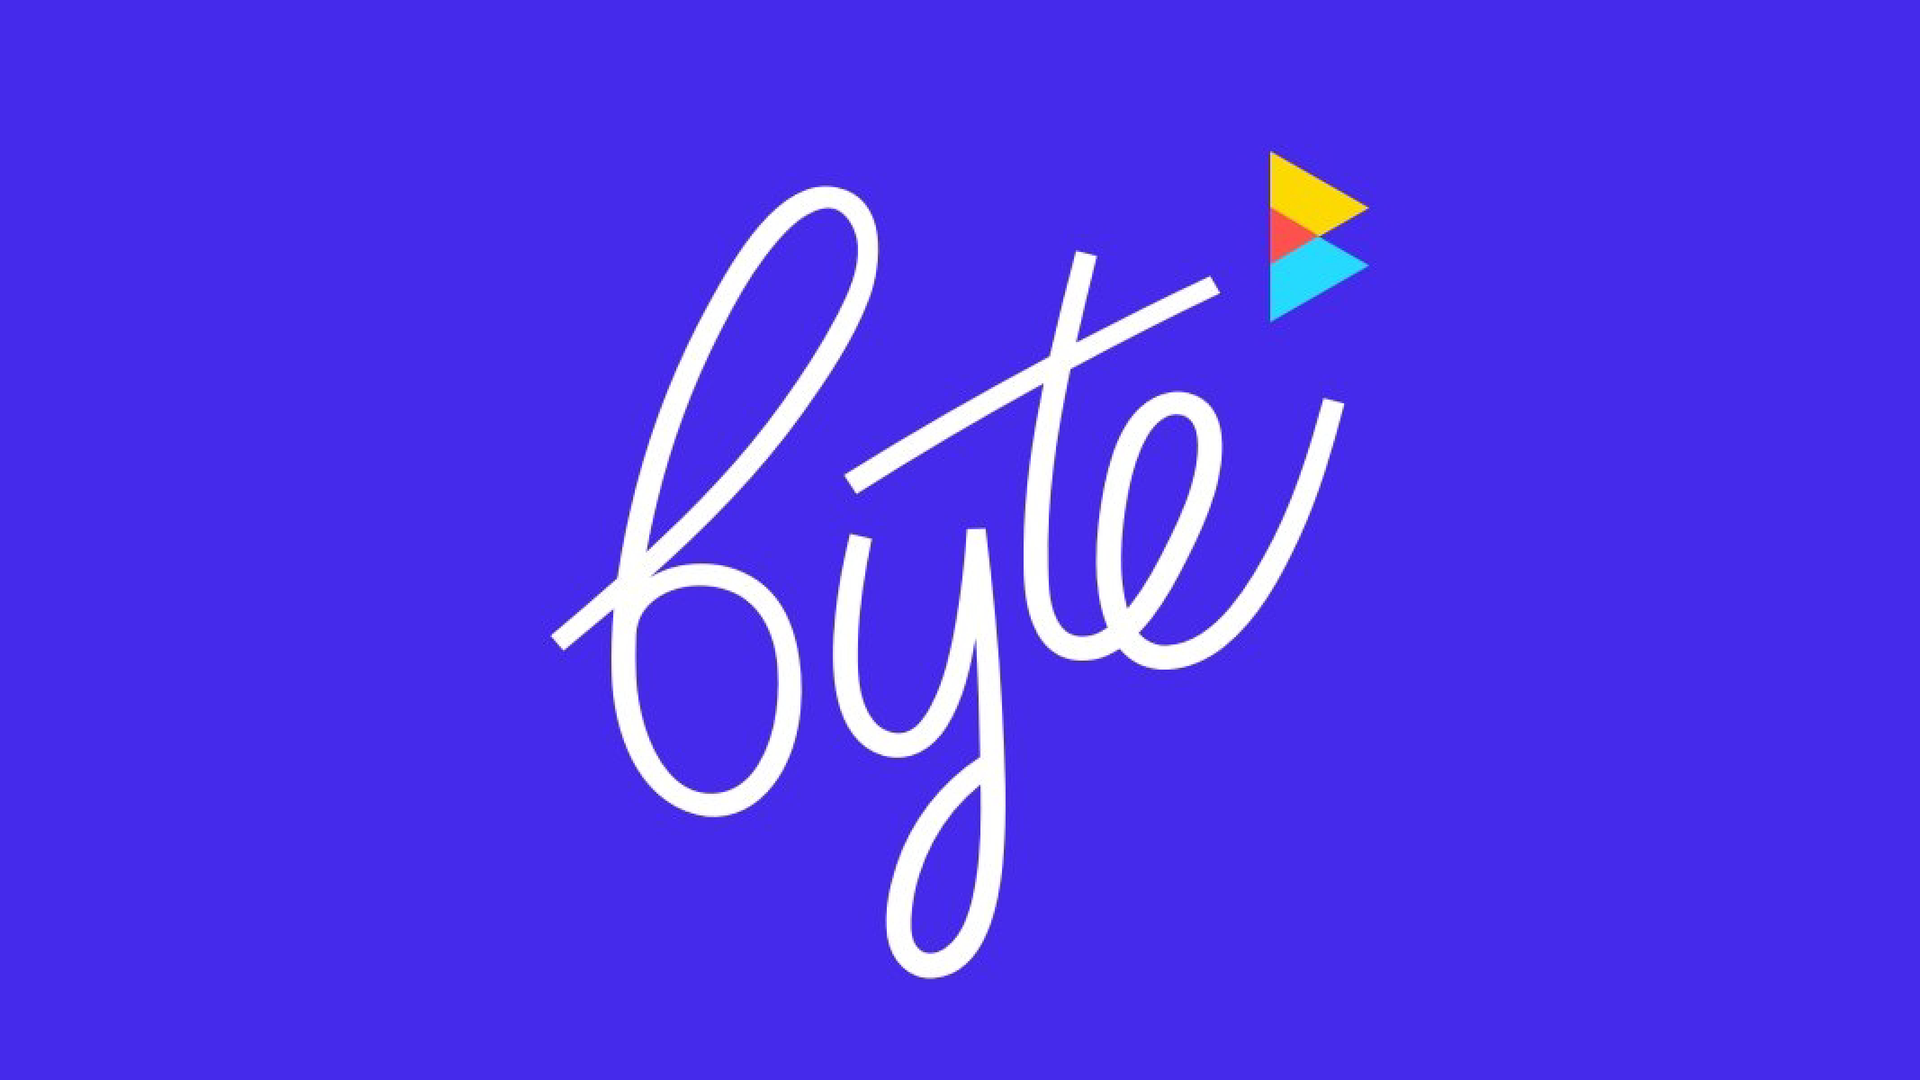 new app byte's logo.